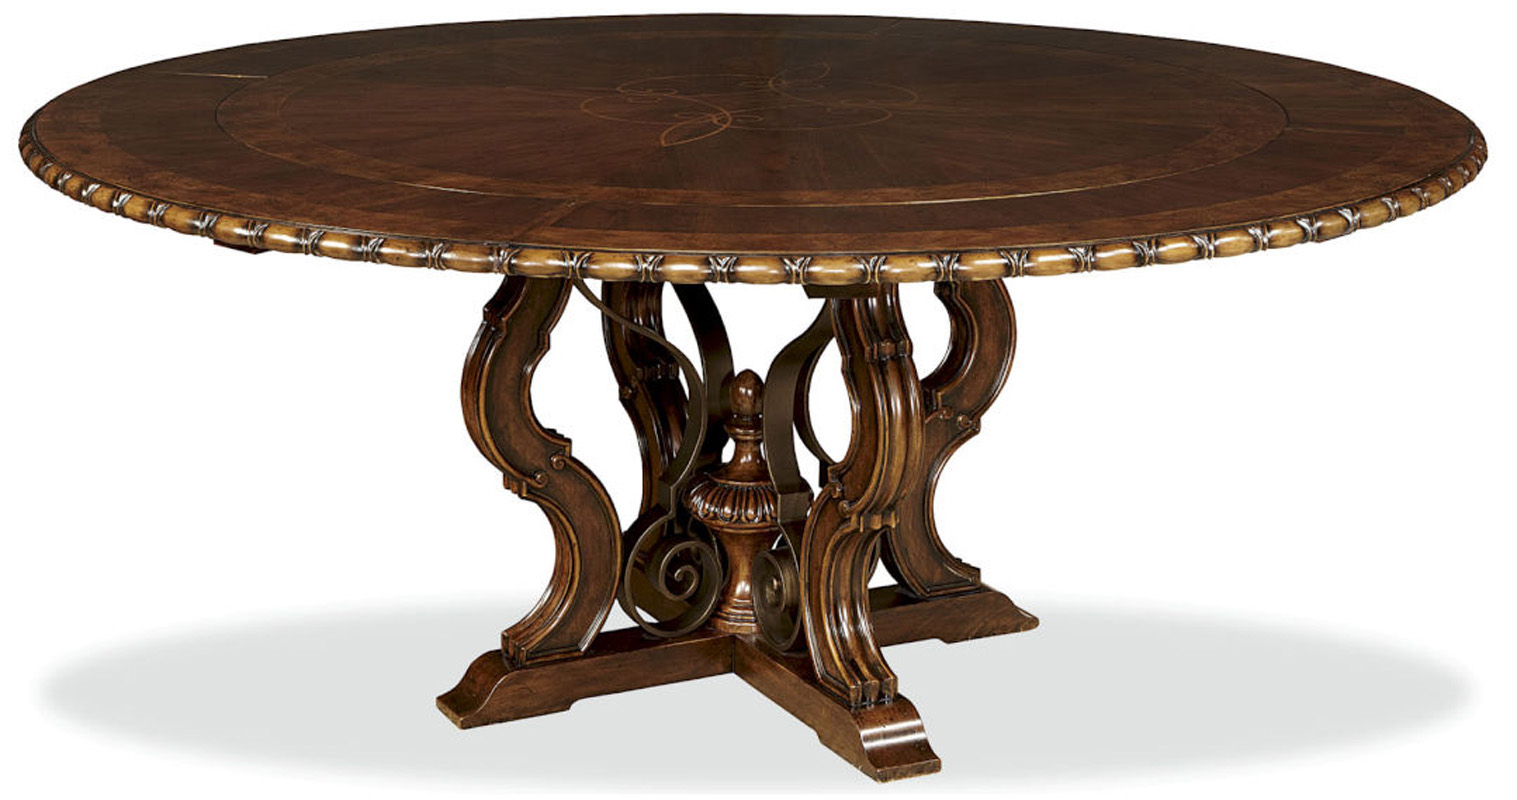 Unique cherry 76 round dining table with leaves ebay for Unique dining tables